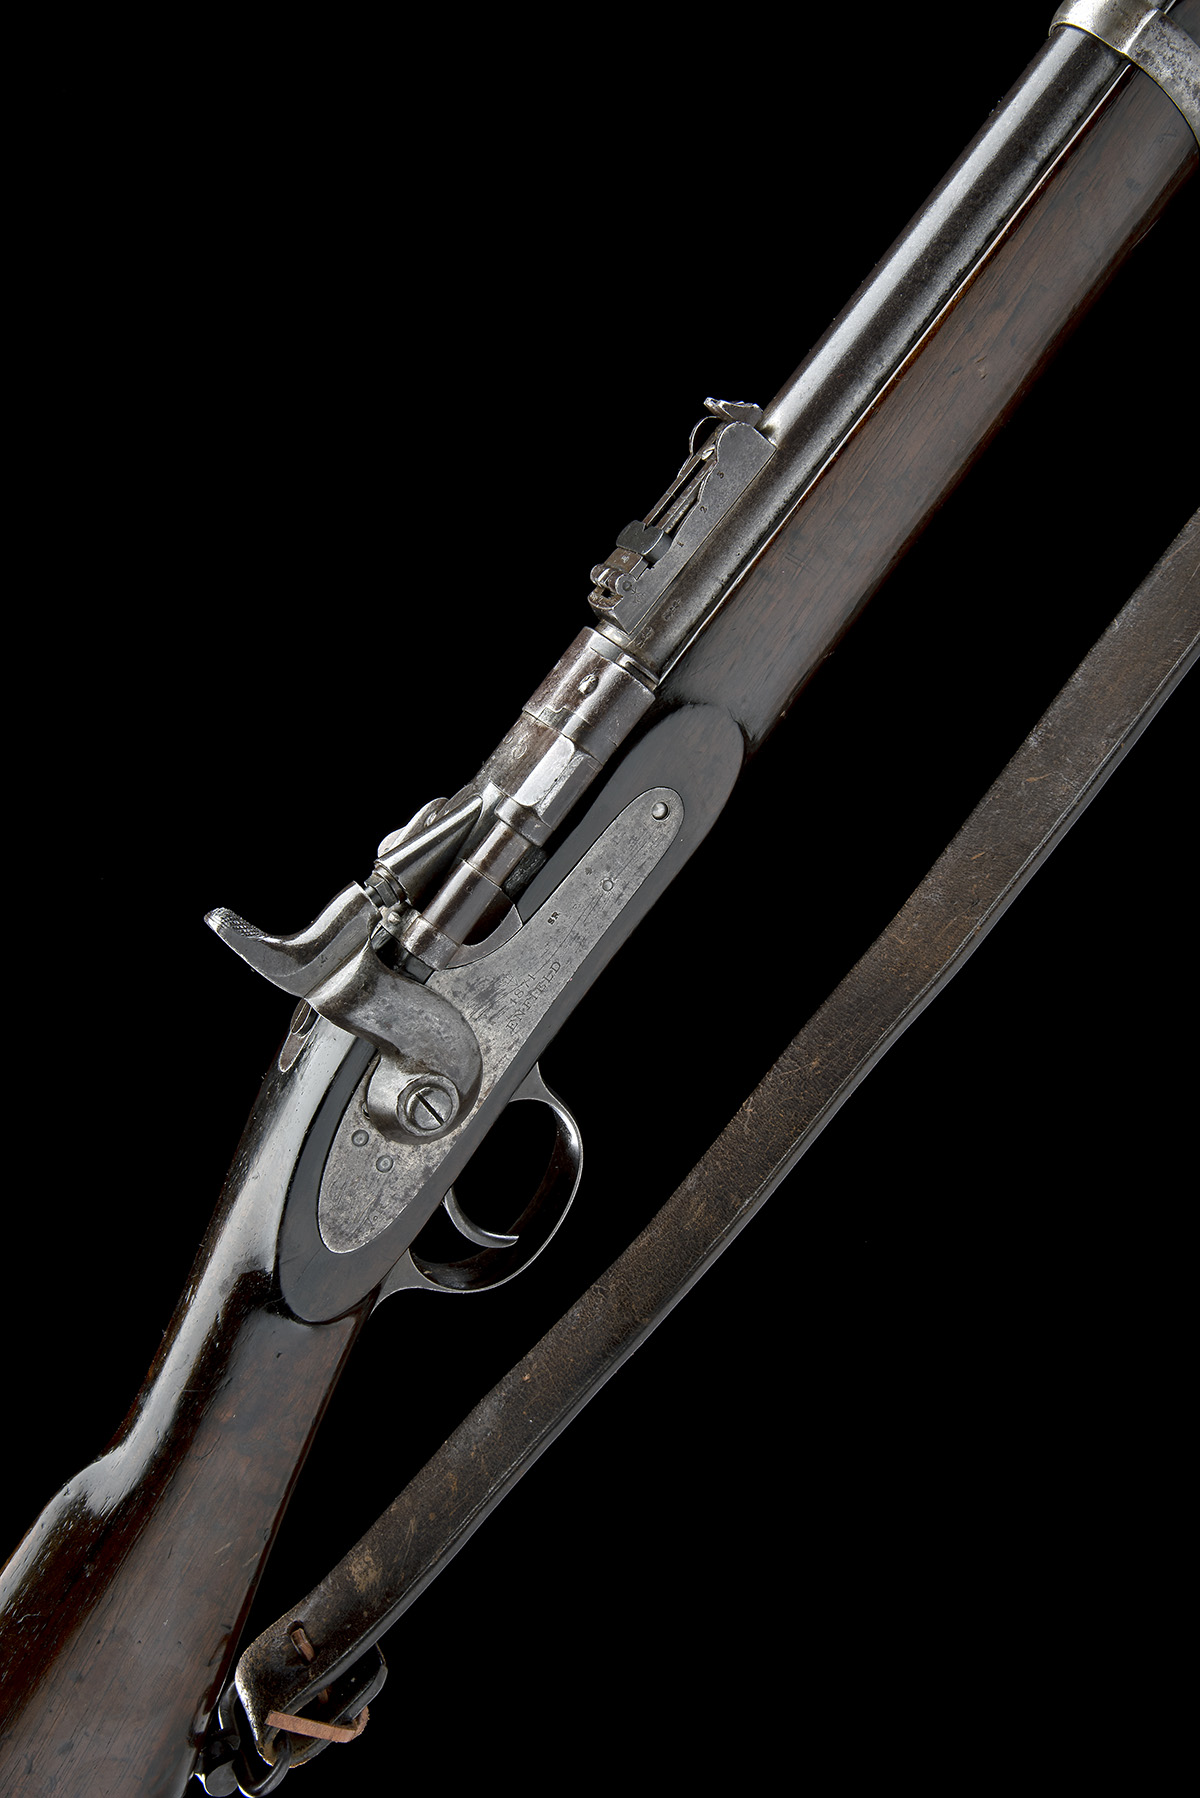 ENFIELD, ENGLAND A .577 (SNIDER) BREECH-LOADING SERVICE-RIFLE, MODEL 'MKIII TWO-BAND', serial no.